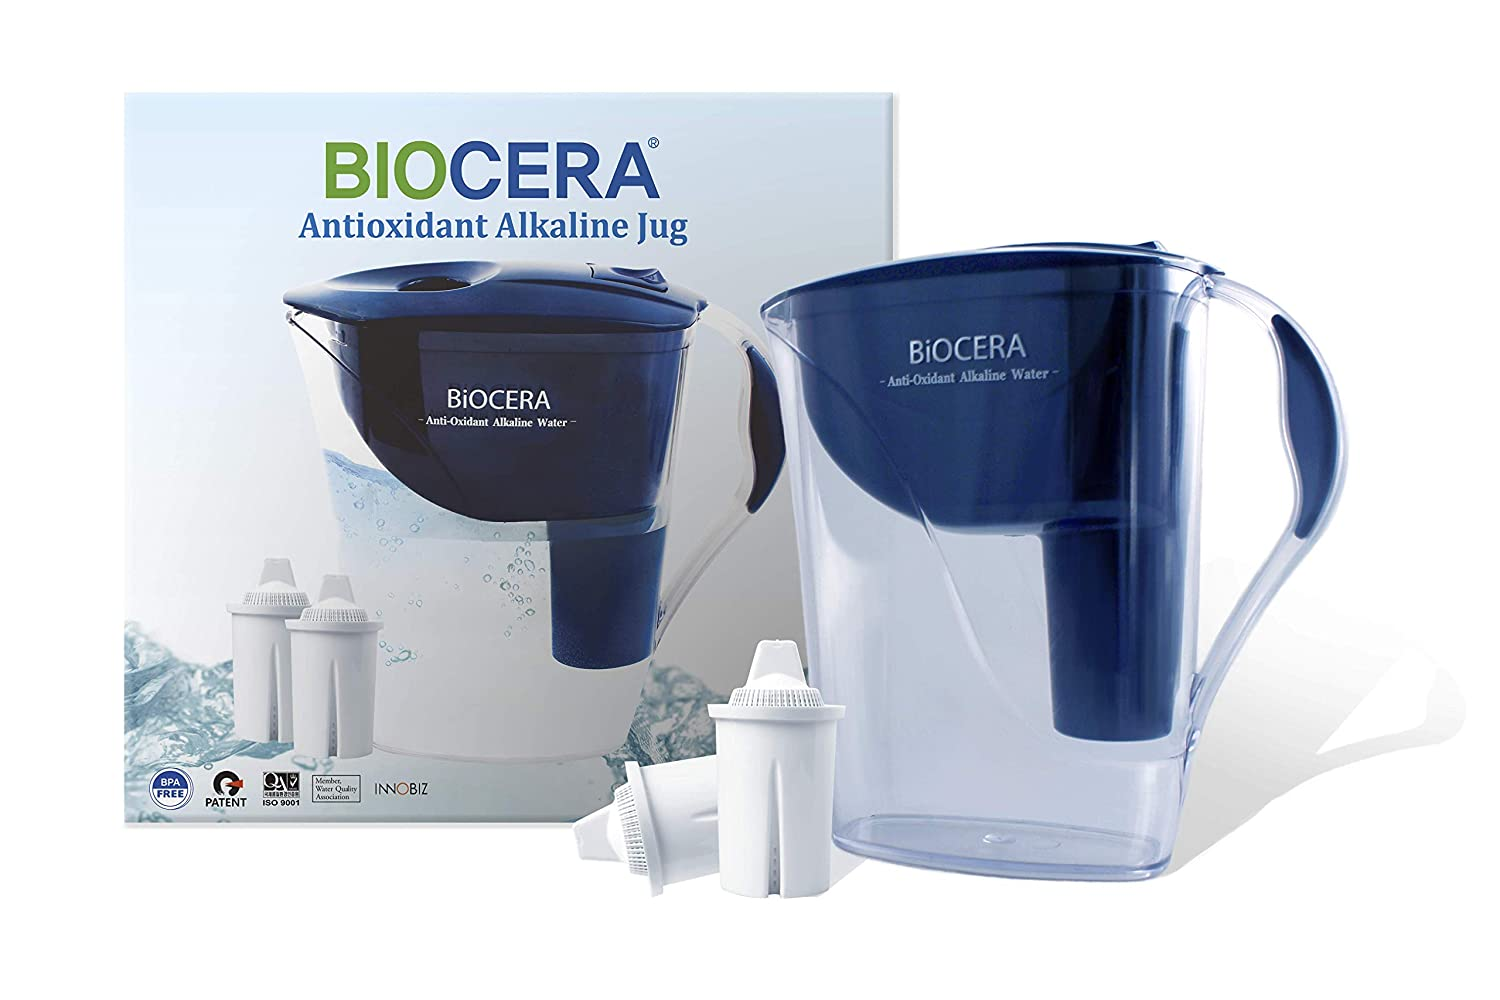 BIOCERA Alkaline Anti-Oxidant Jug Filter (Includes 2 FREE Cartridges - Lasts 4 Months) 003